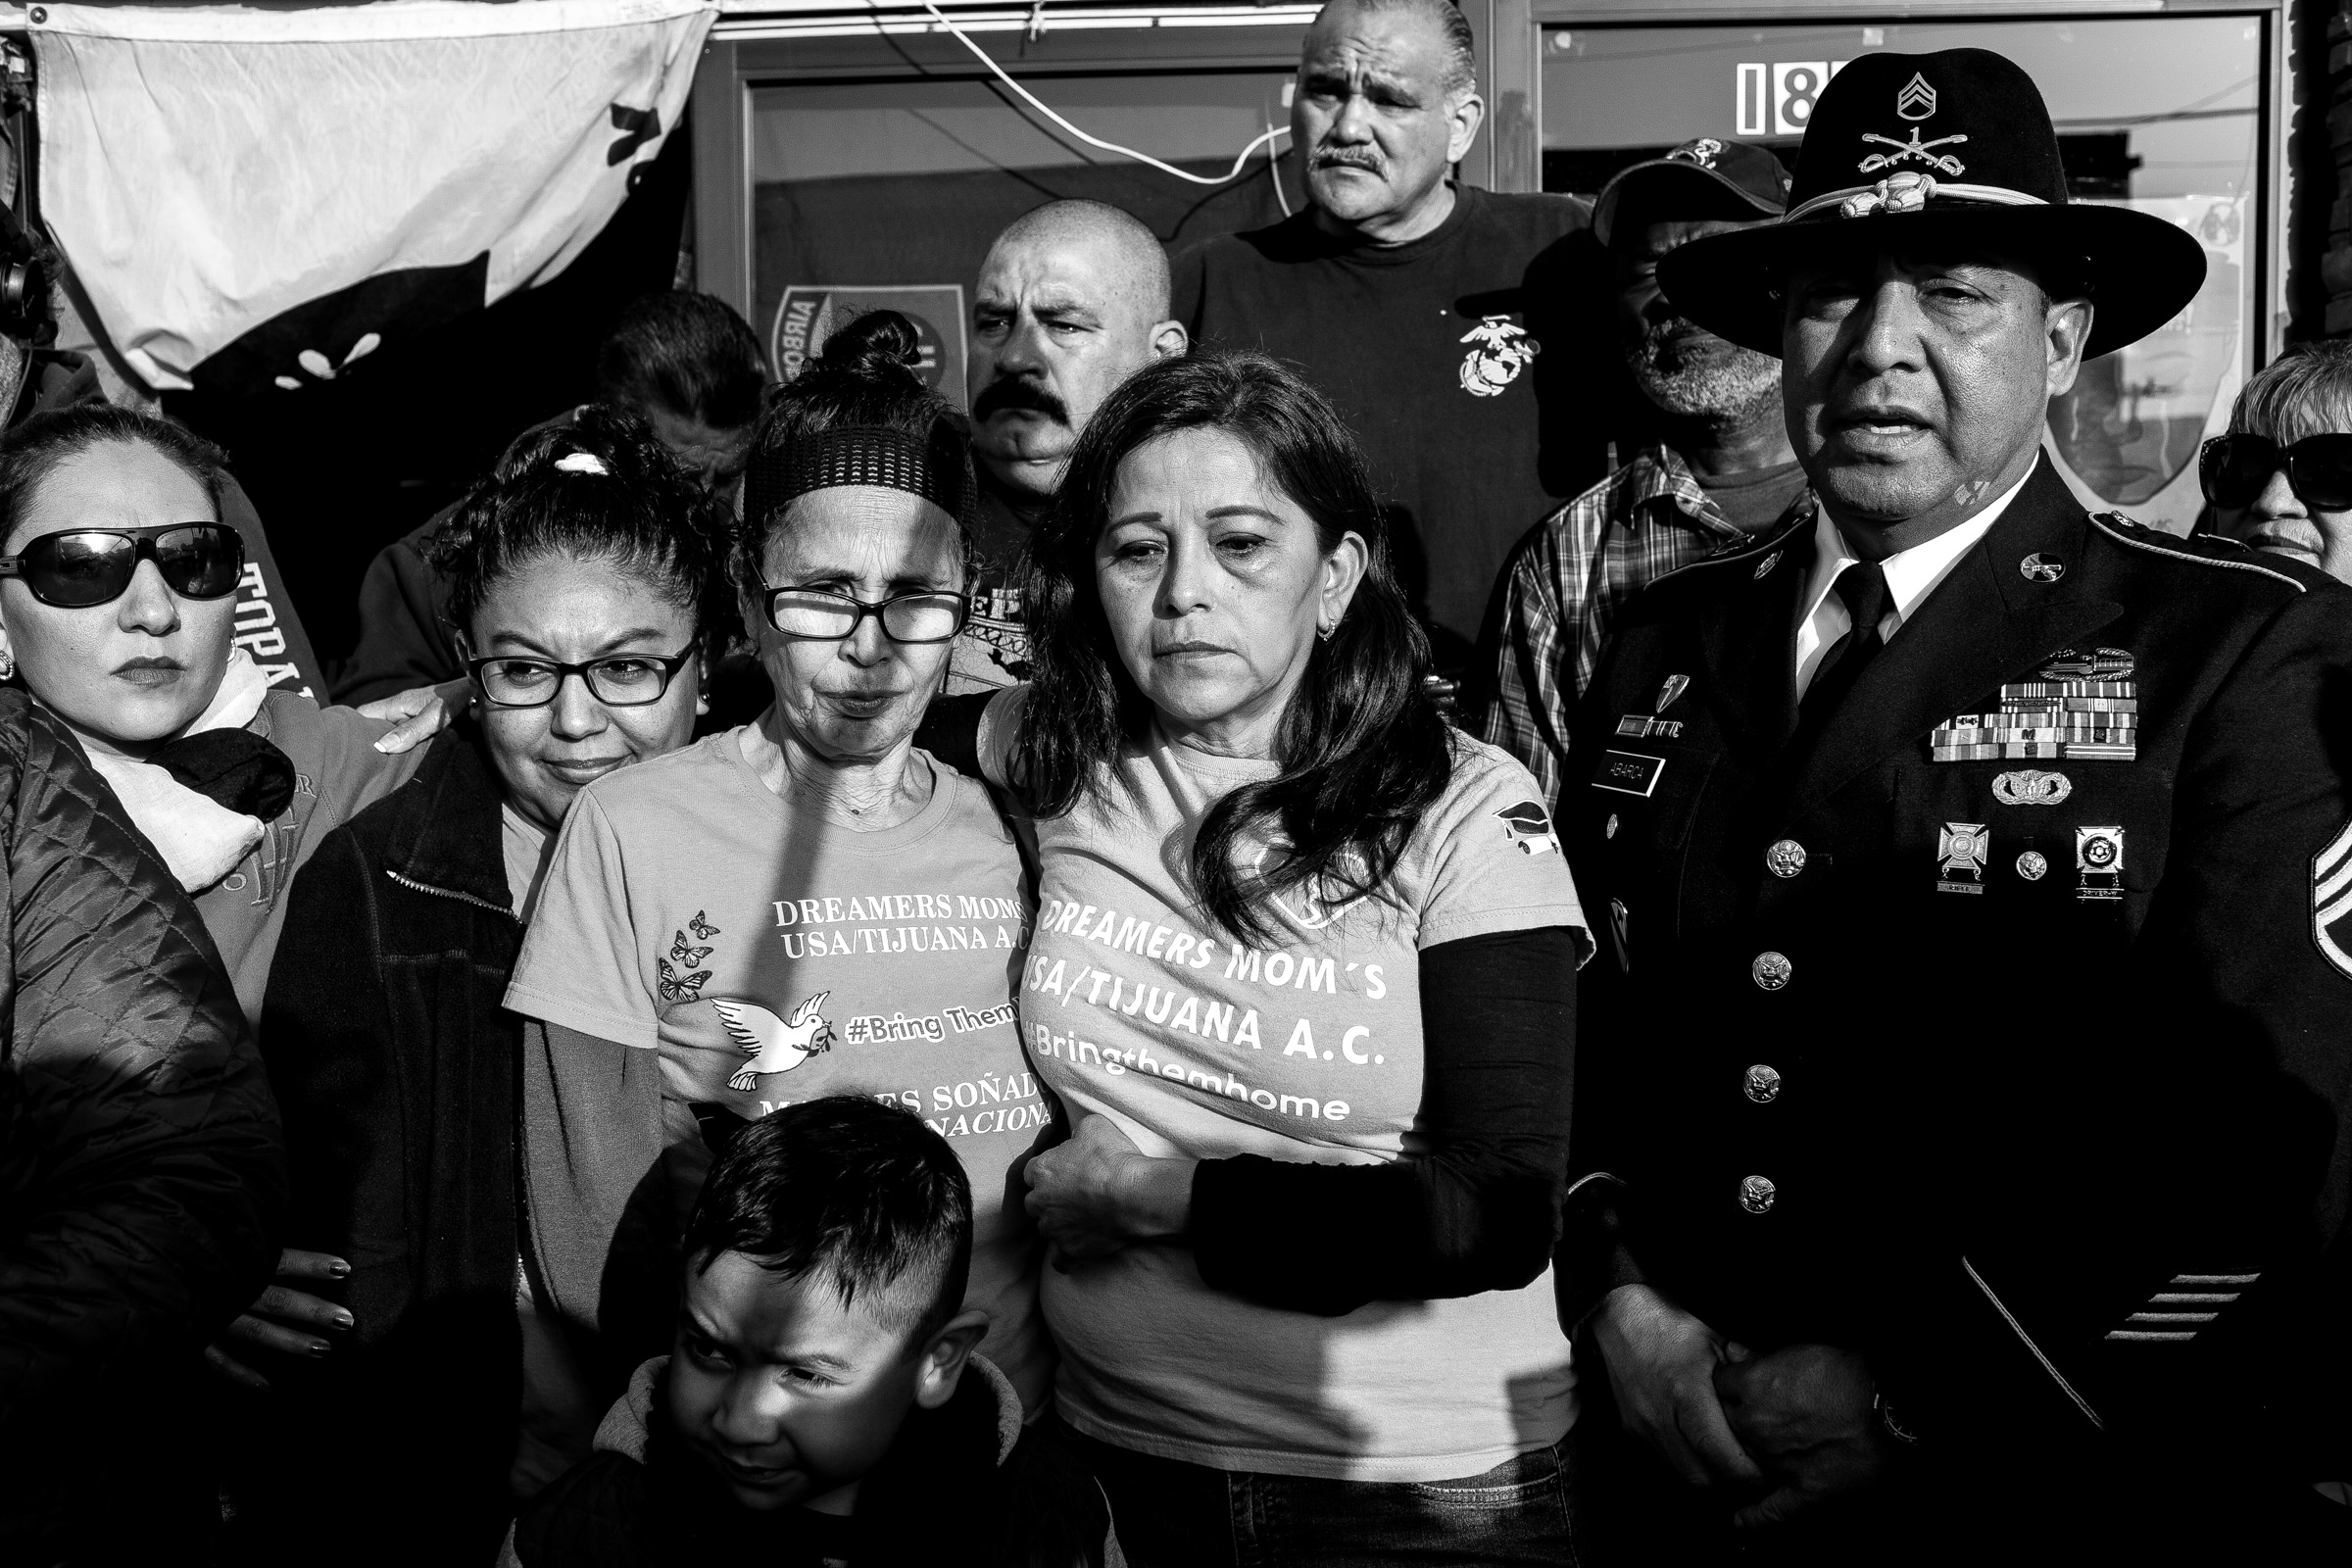 Supporters of deported U.S. Army veteran Hector Barajas-Varela—consisting of deported mothers and other U.S. military veterans—gather in Tijuana, Baja California, México, before he is sworn in as a U.S. citizen later that day in San Diego, Calif., Friday, April 13, 2018.   Barajas-Varela, not present in this photograph, spent a total of 14 years living in Mexico after two separate deportations in 2004 and 2010. (Photo by Joel Angel Juárez/GroundTruth)